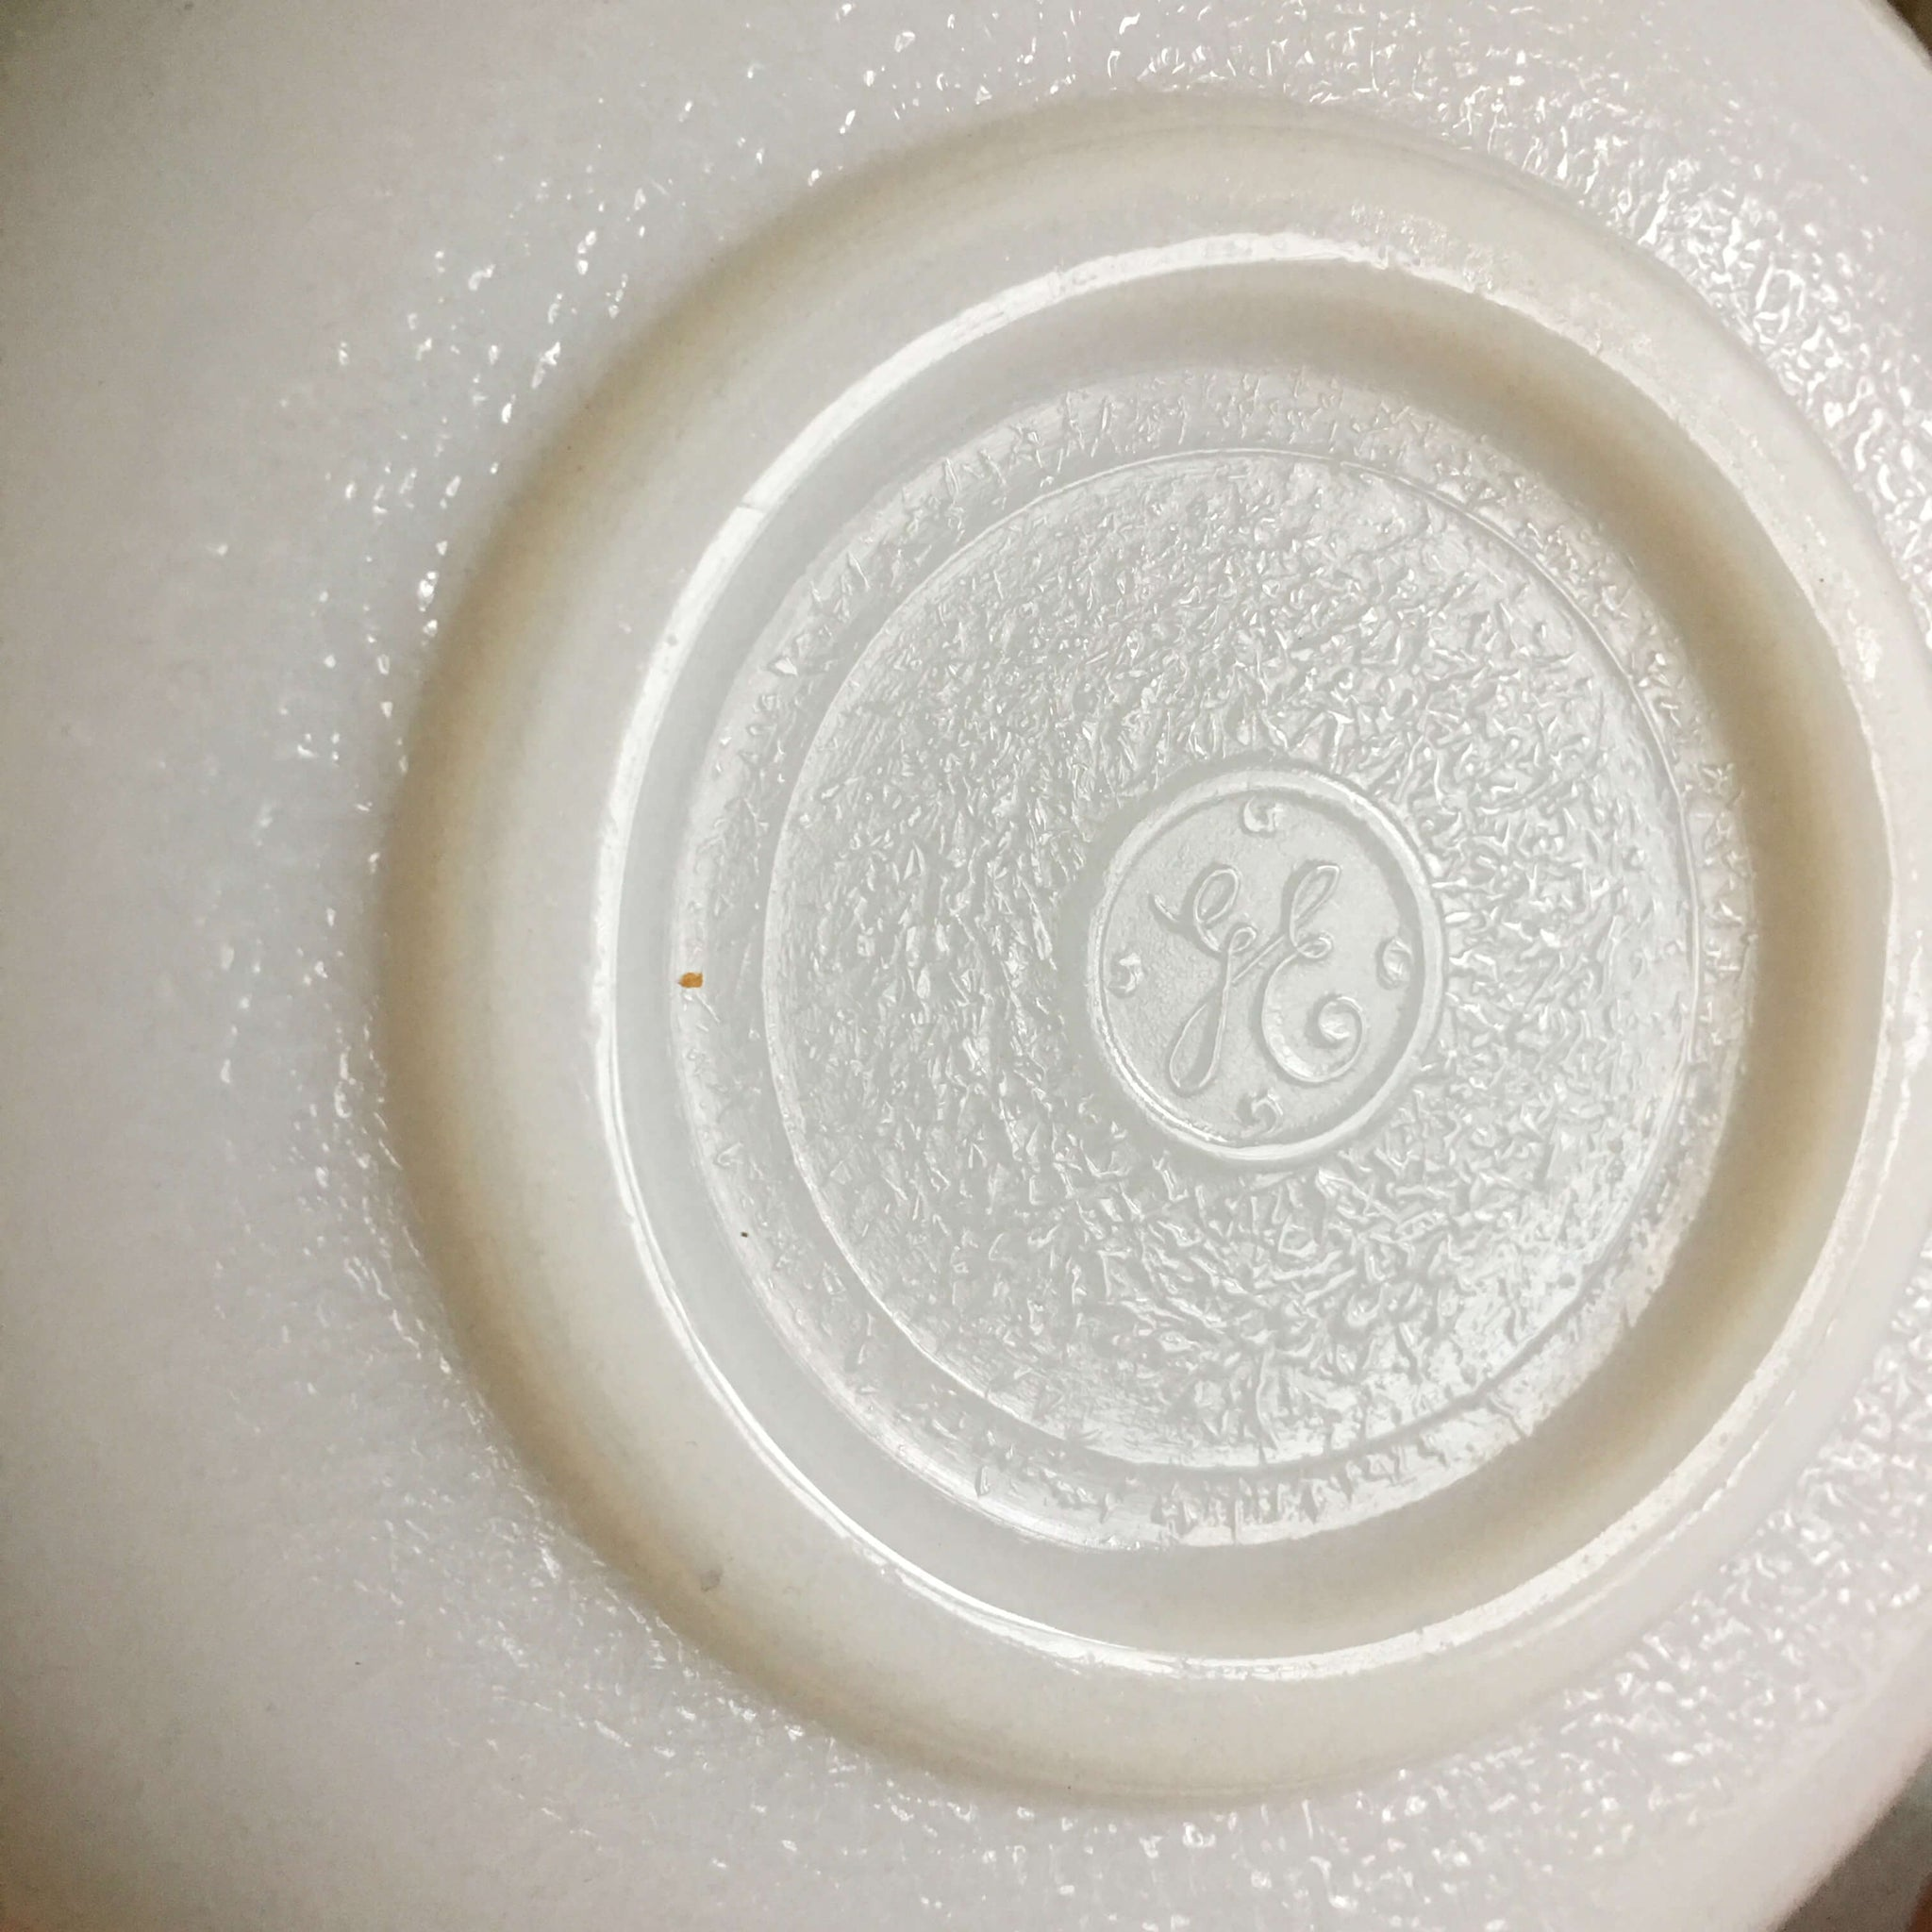 Vintage 1940s Milk Glass Mixing Bowl Made by General Electric - Beehive Style